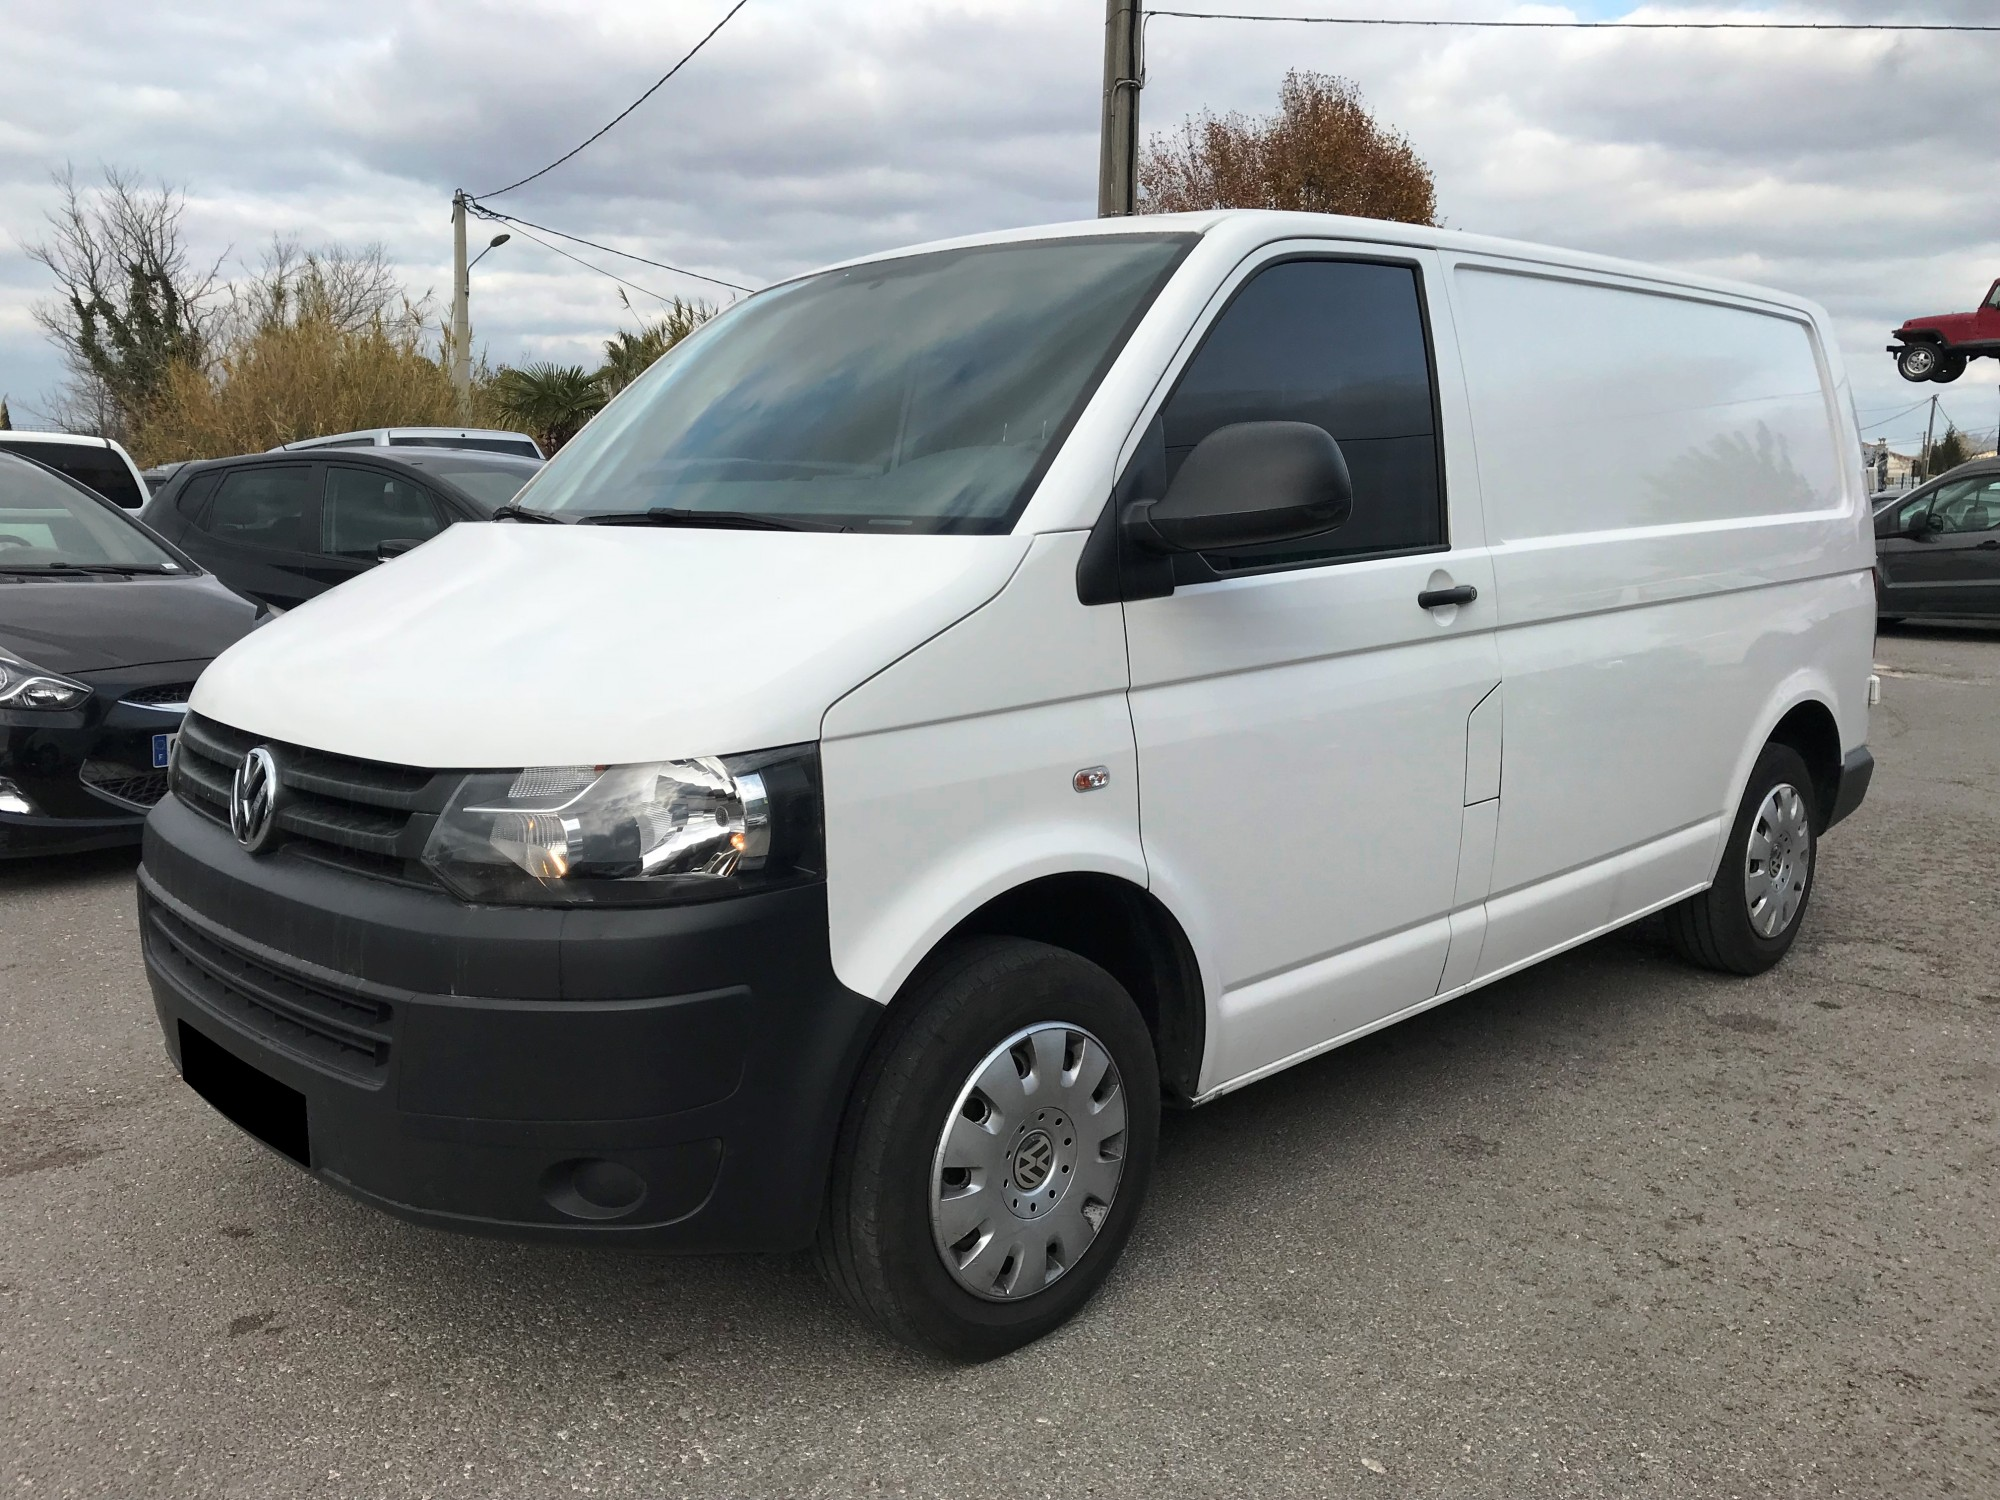 volkswagen transporter 2 0 tdi 140 ch business line dsg7 2015 tva voir dans les bouches du. Black Bedroom Furniture Sets. Home Design Ideas